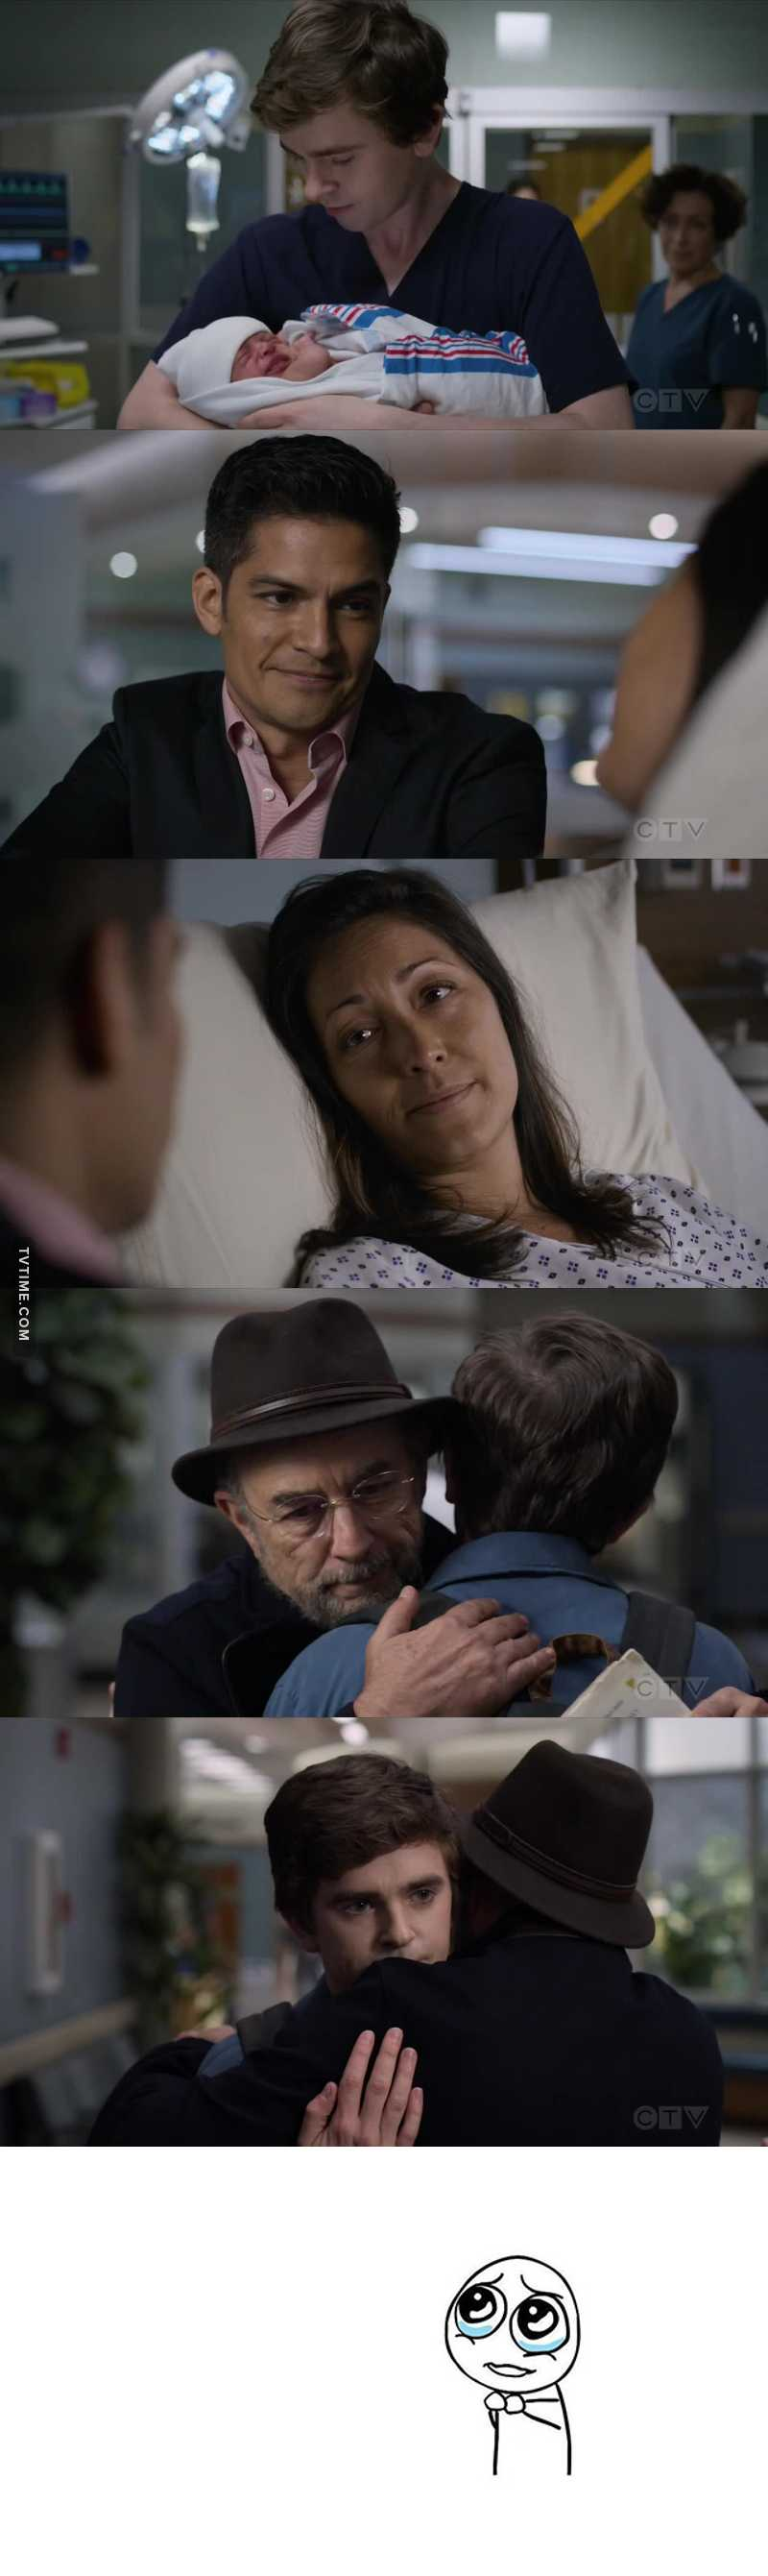 The most memorable, adorable, and the best scene in this episode so far. 😍🥰😊 Our boy, Shaun, really makes us proud. He deserves to win an Emmy for sure. ☺️ Proud of him.